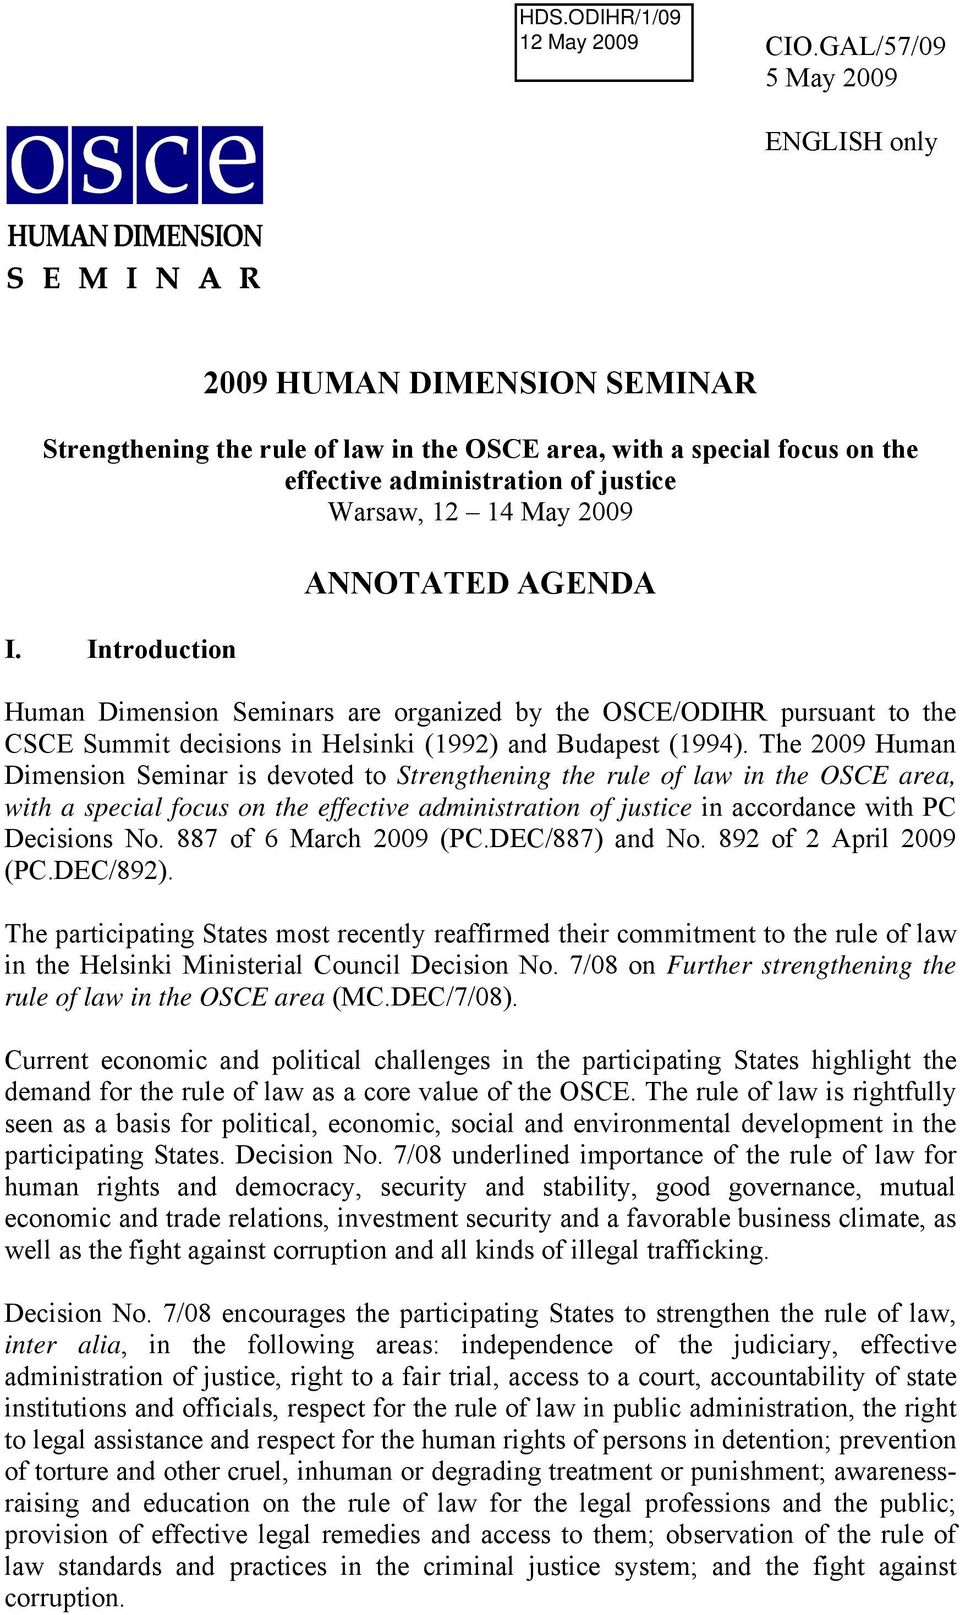 The 2009 Human Dimension Seminar is devoted to Strengthening the rule of law in the OSCE area, with a special focus on the effective administration of justice in accordance with PC Decisions No.